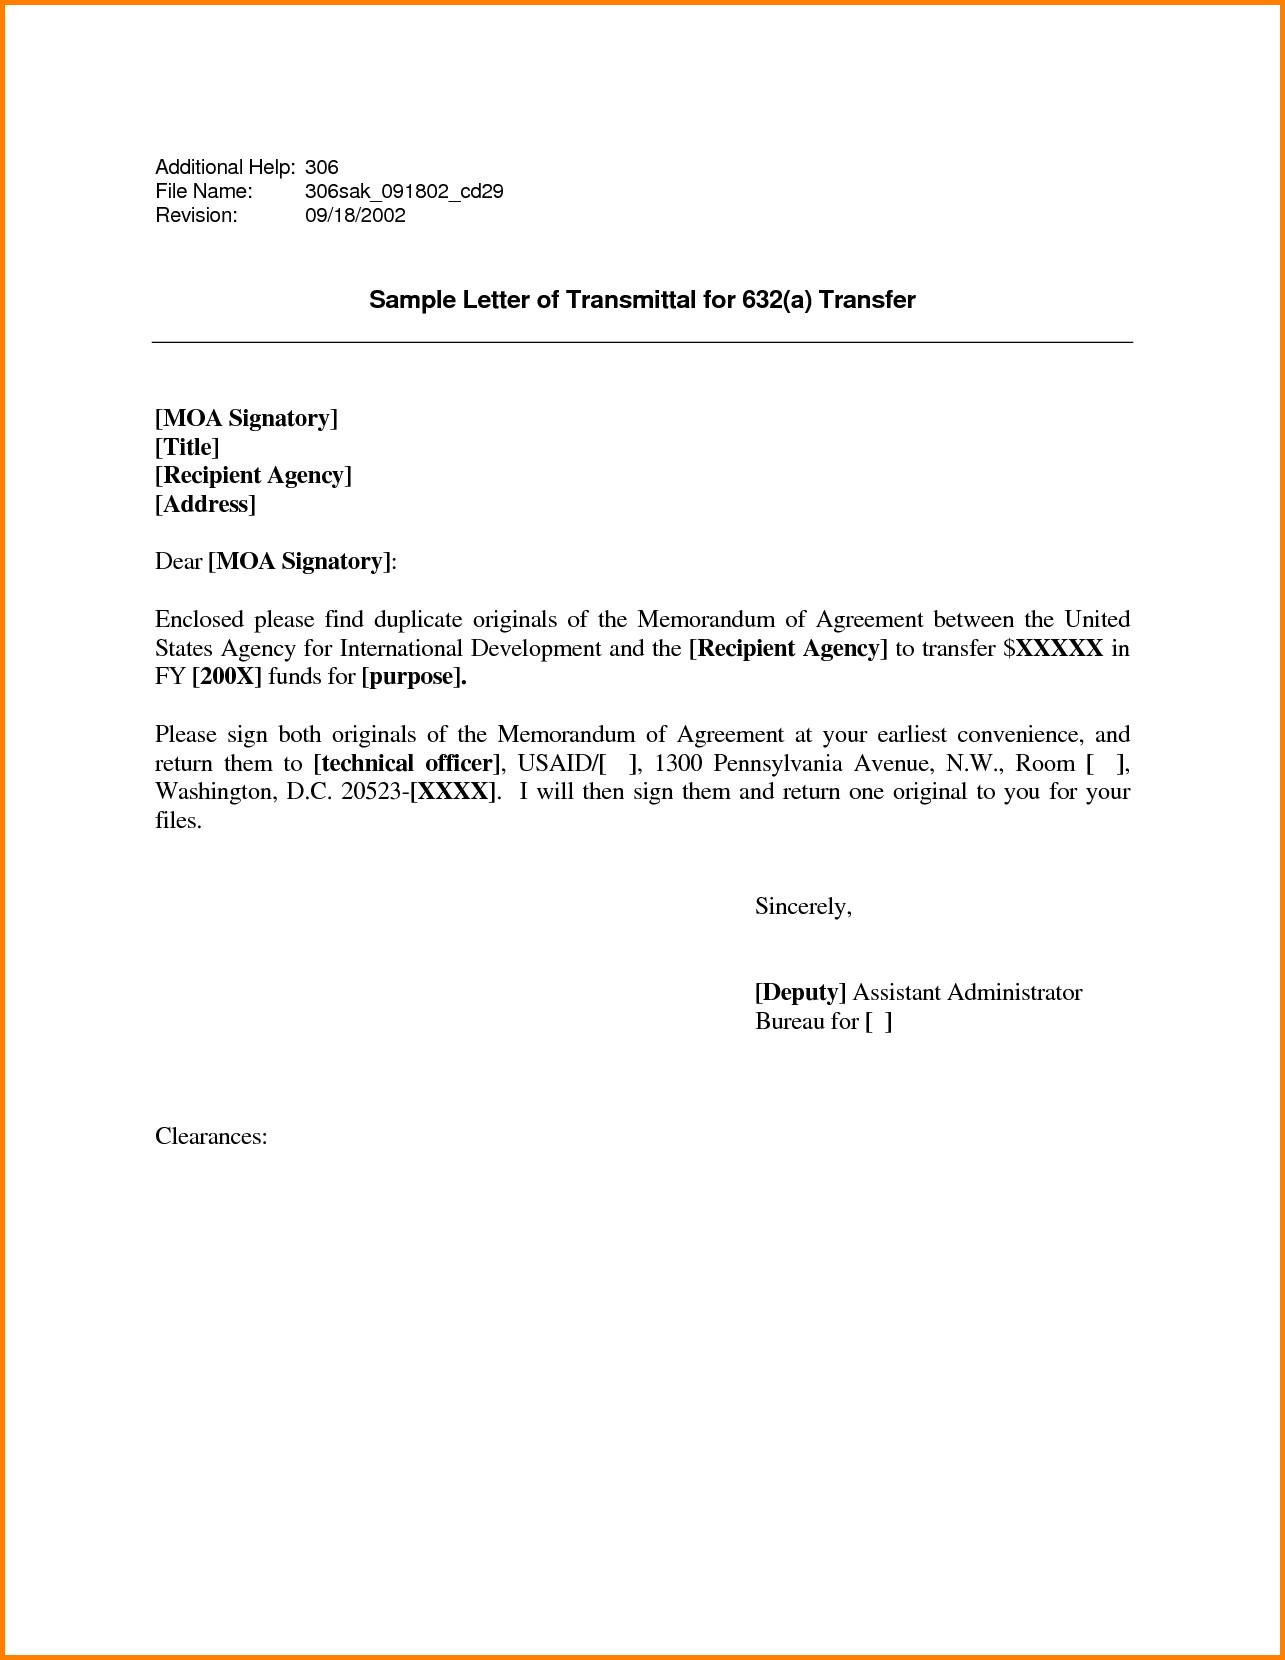 Letter Of Transmittal Example | Letter Of Transmittal Template Doc Examples Letter Template Collection